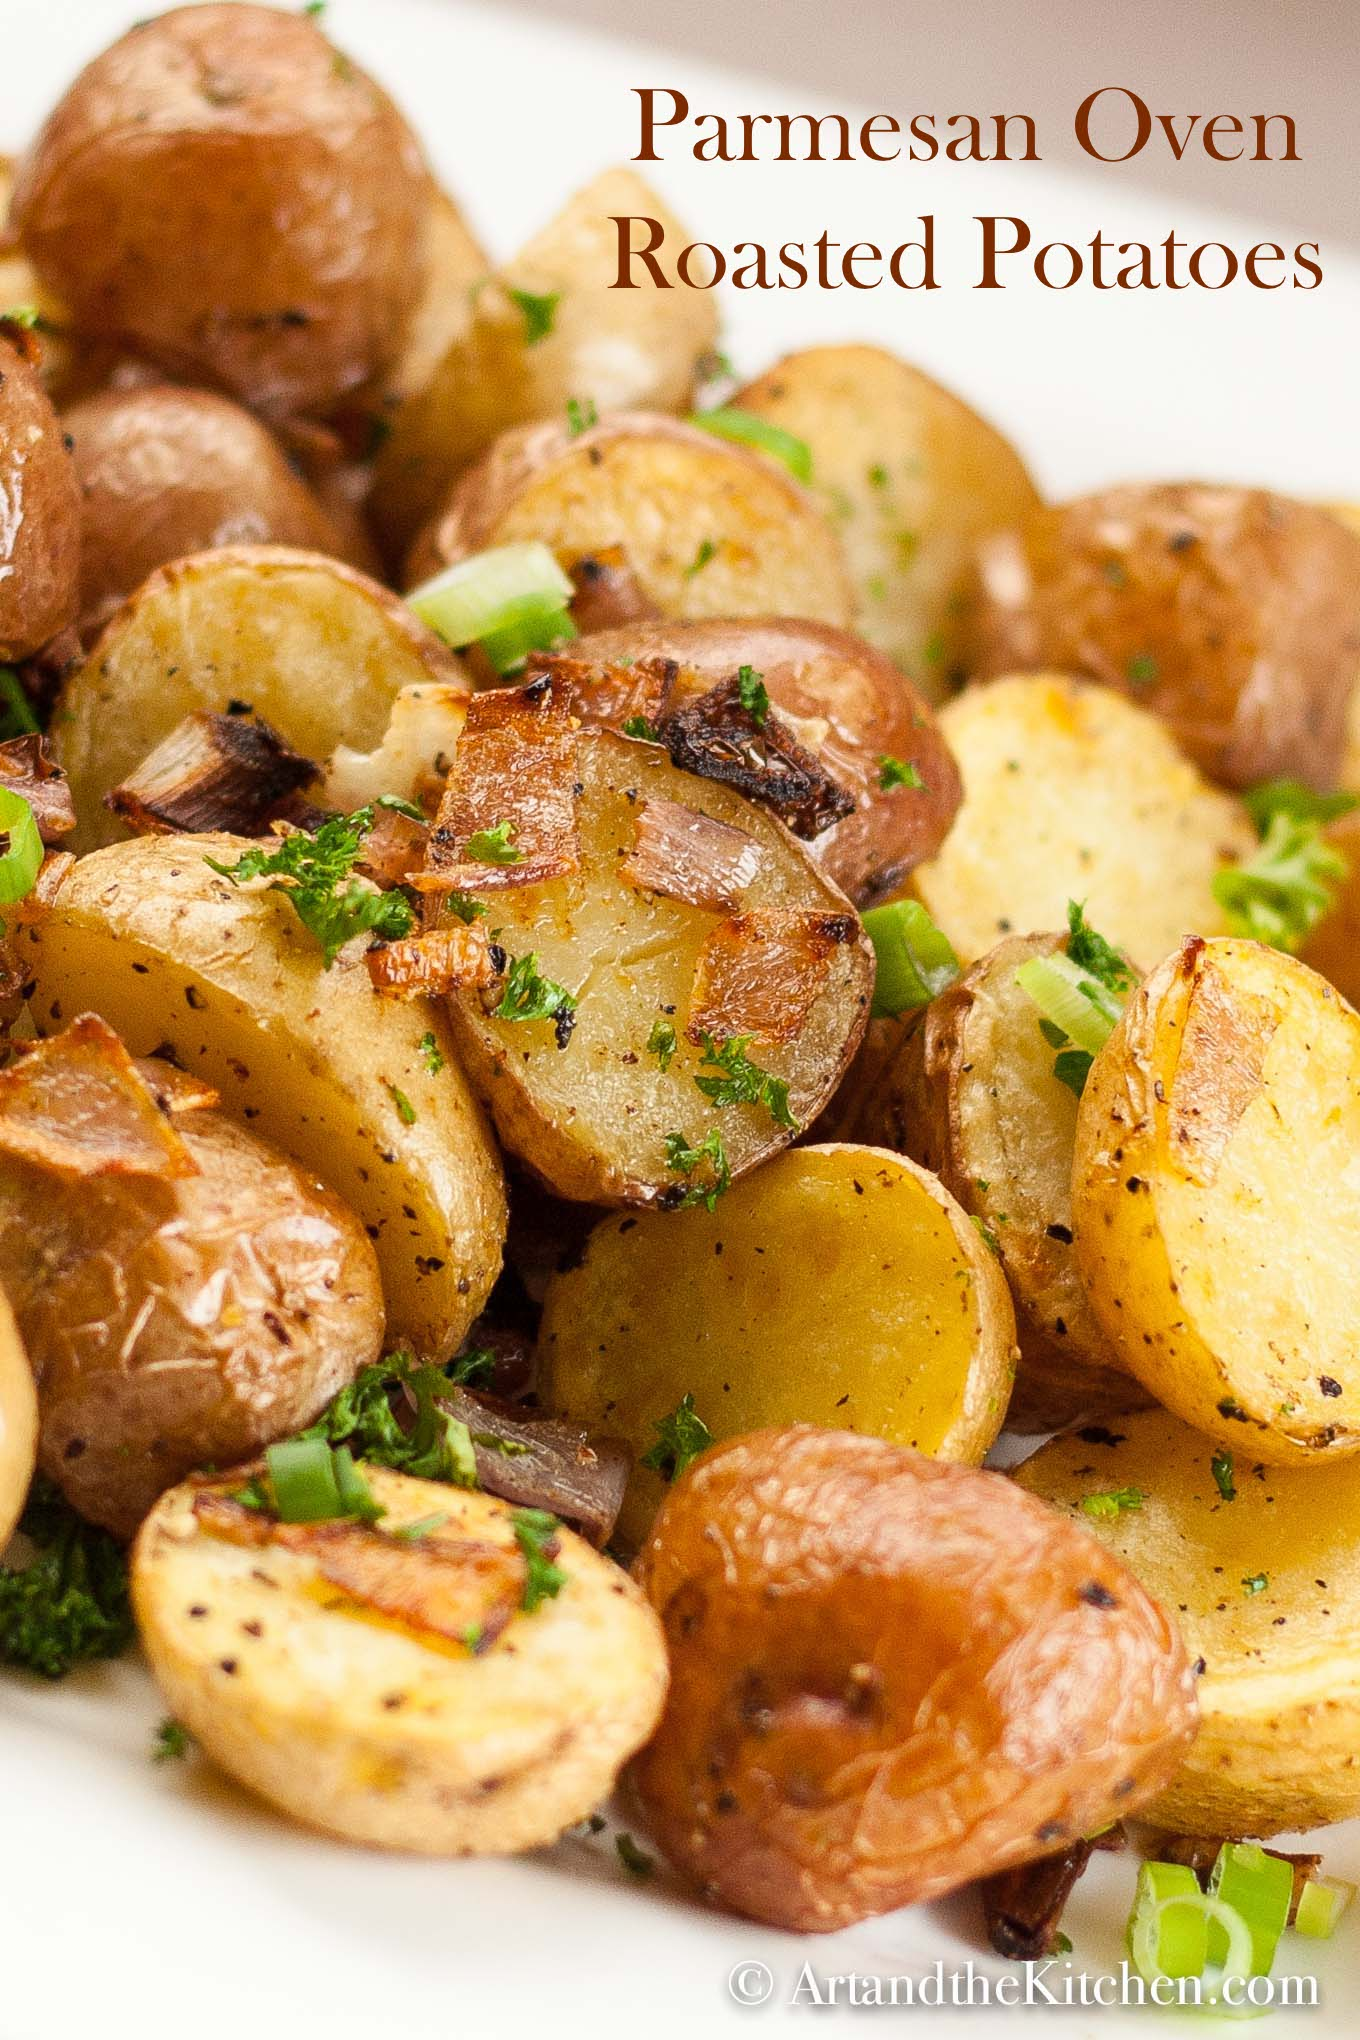 Plate of golden roasted potatoes garnished with green onions.